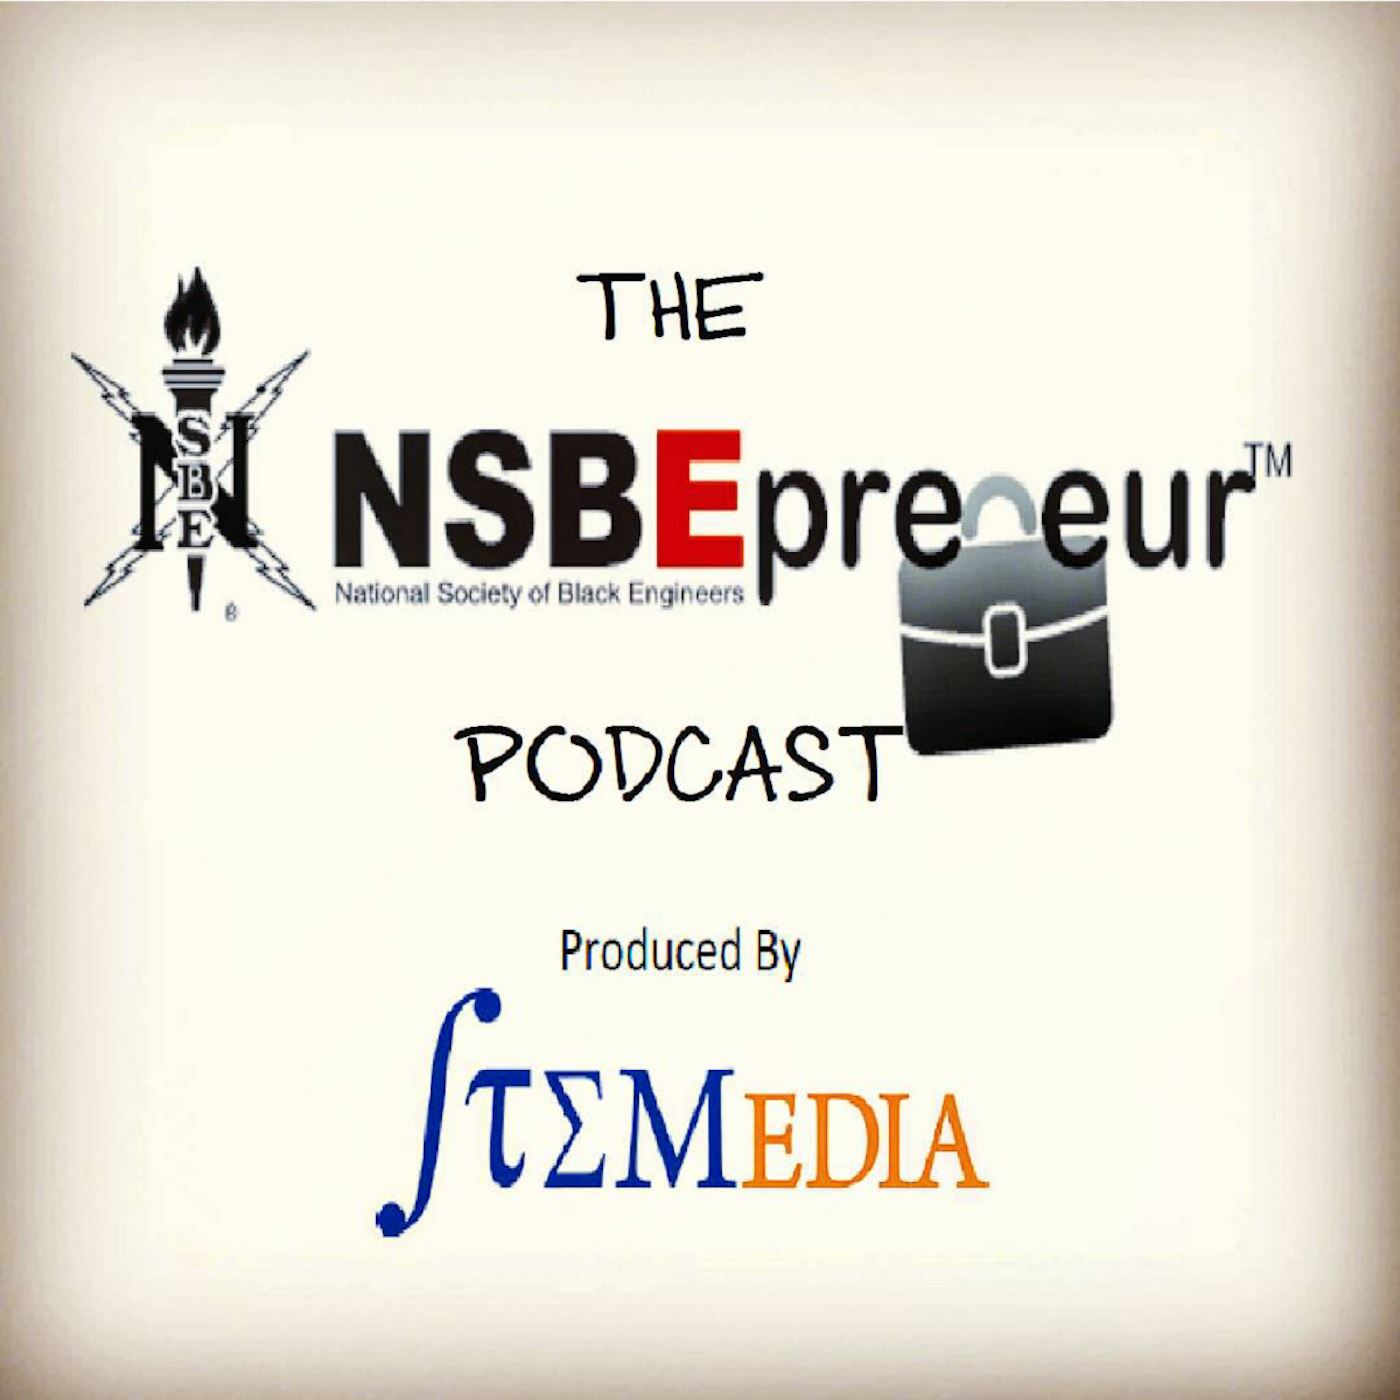 NSBEpreneur Podcast, produced by STEMedia